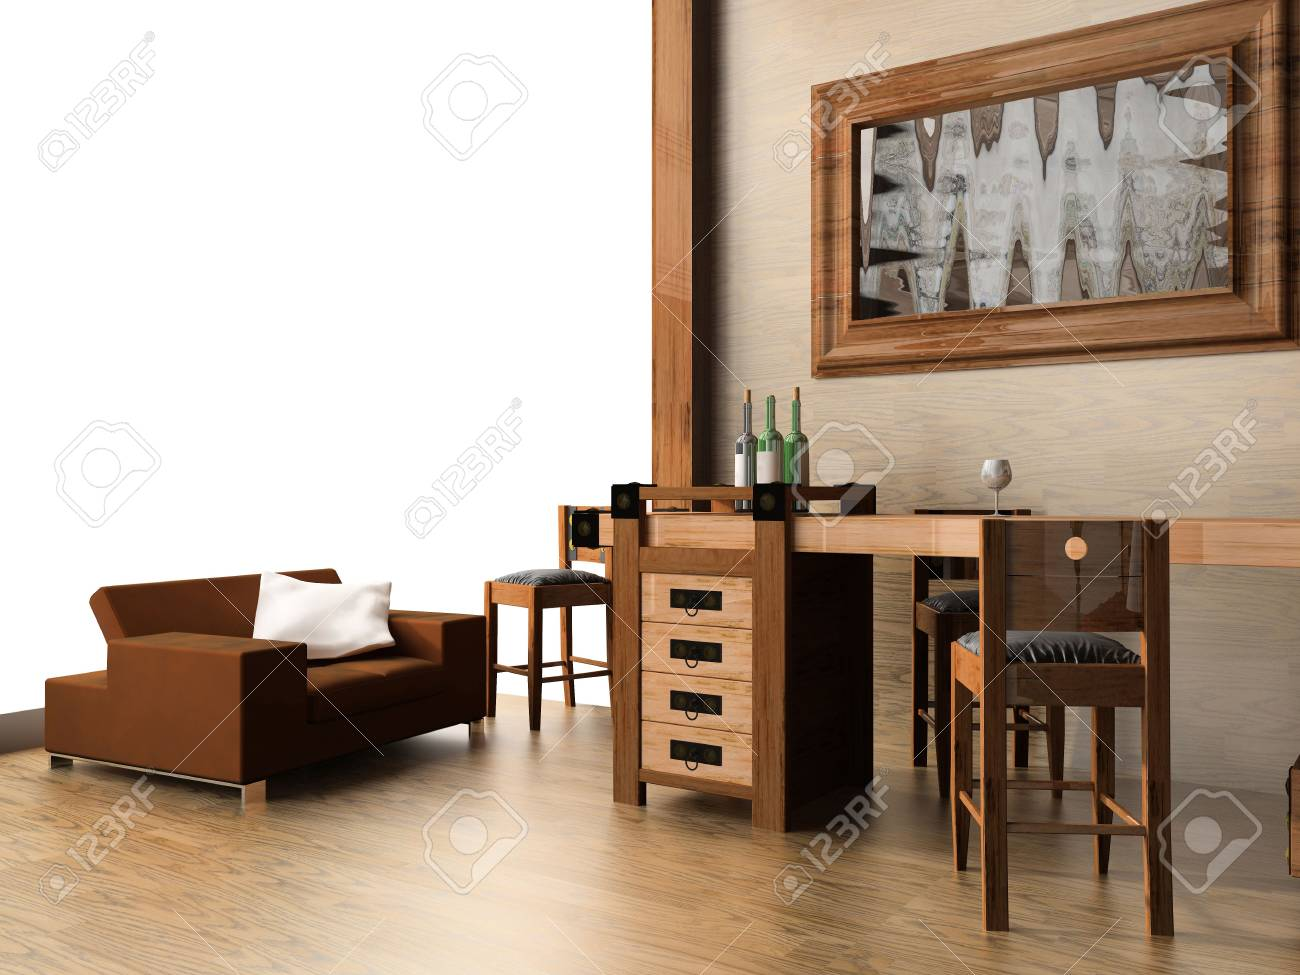 Bar in a hall of hotel Stock Photo - 3703484